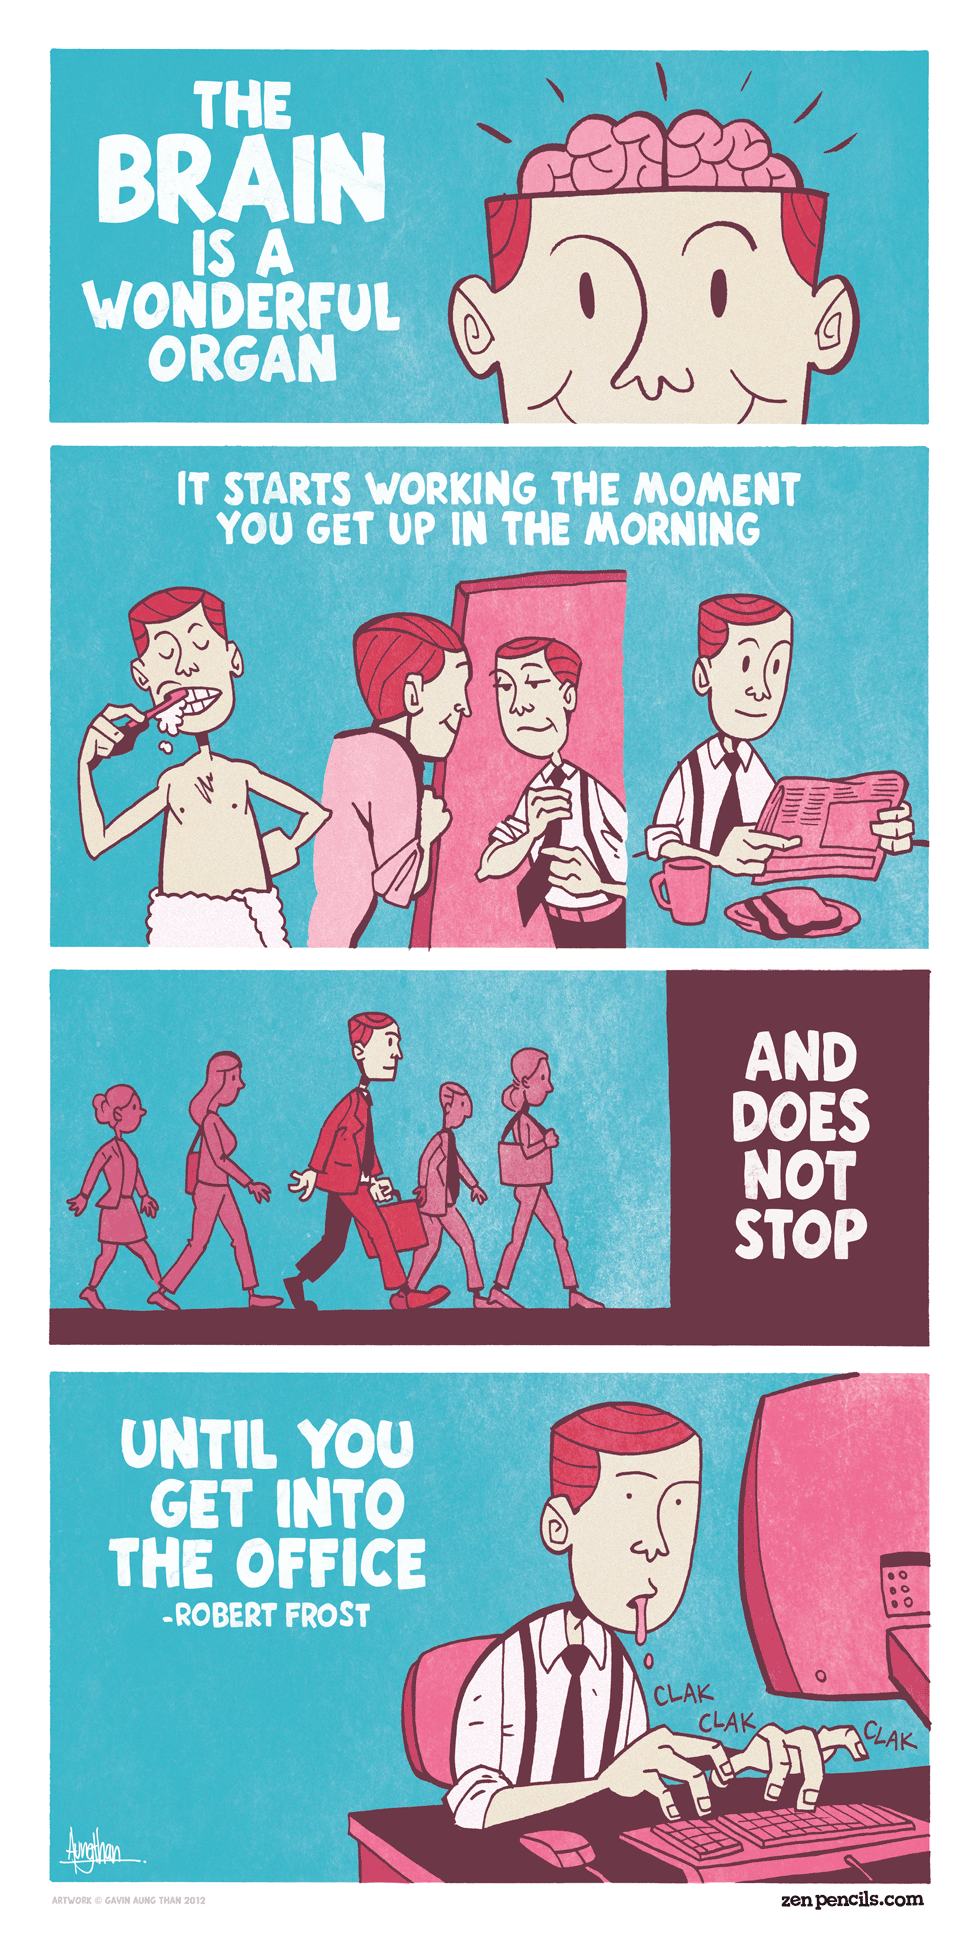 The Brain is a Wonderful Organ. Credit to www.zenpencils.com. THE Ills A WONDERFUL ORGAN IT STARTS WORKING THE MOMENT YOU GET UP IN THE MORNING. God gave man a brain and a penis....but only enough blood for one at a time